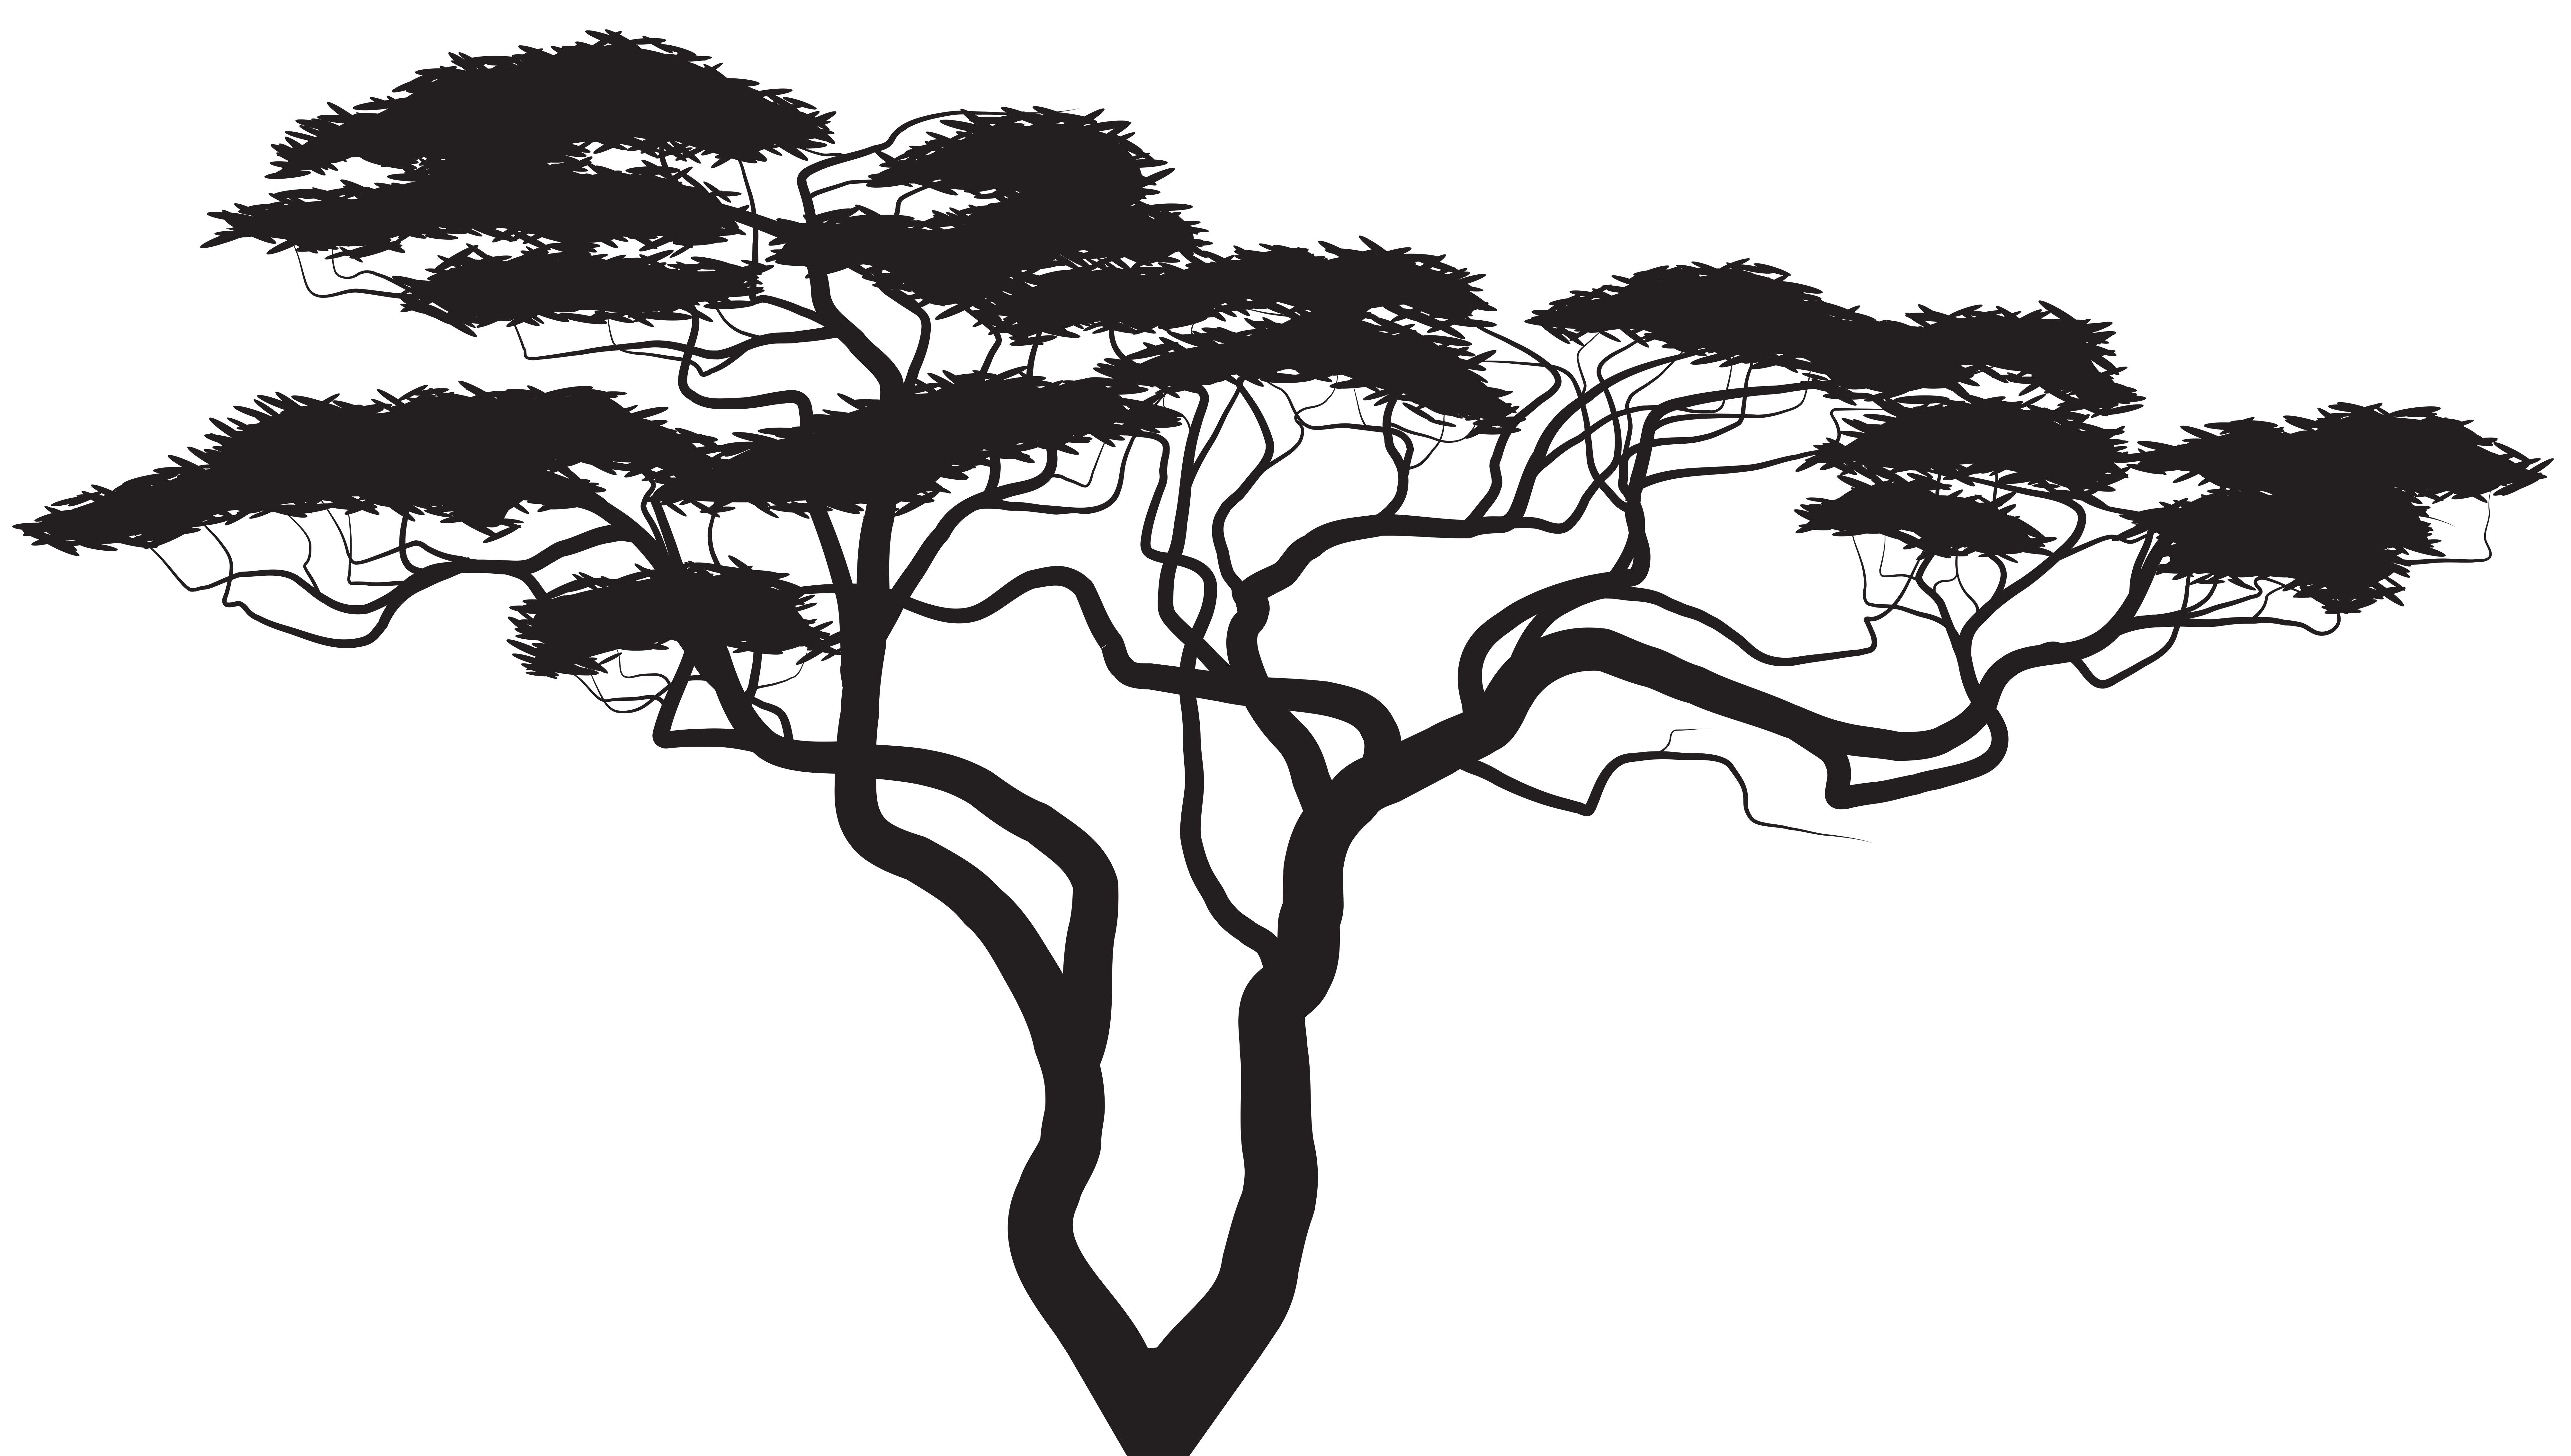 Library Of Tree Roots Image Freeuse Library Black And